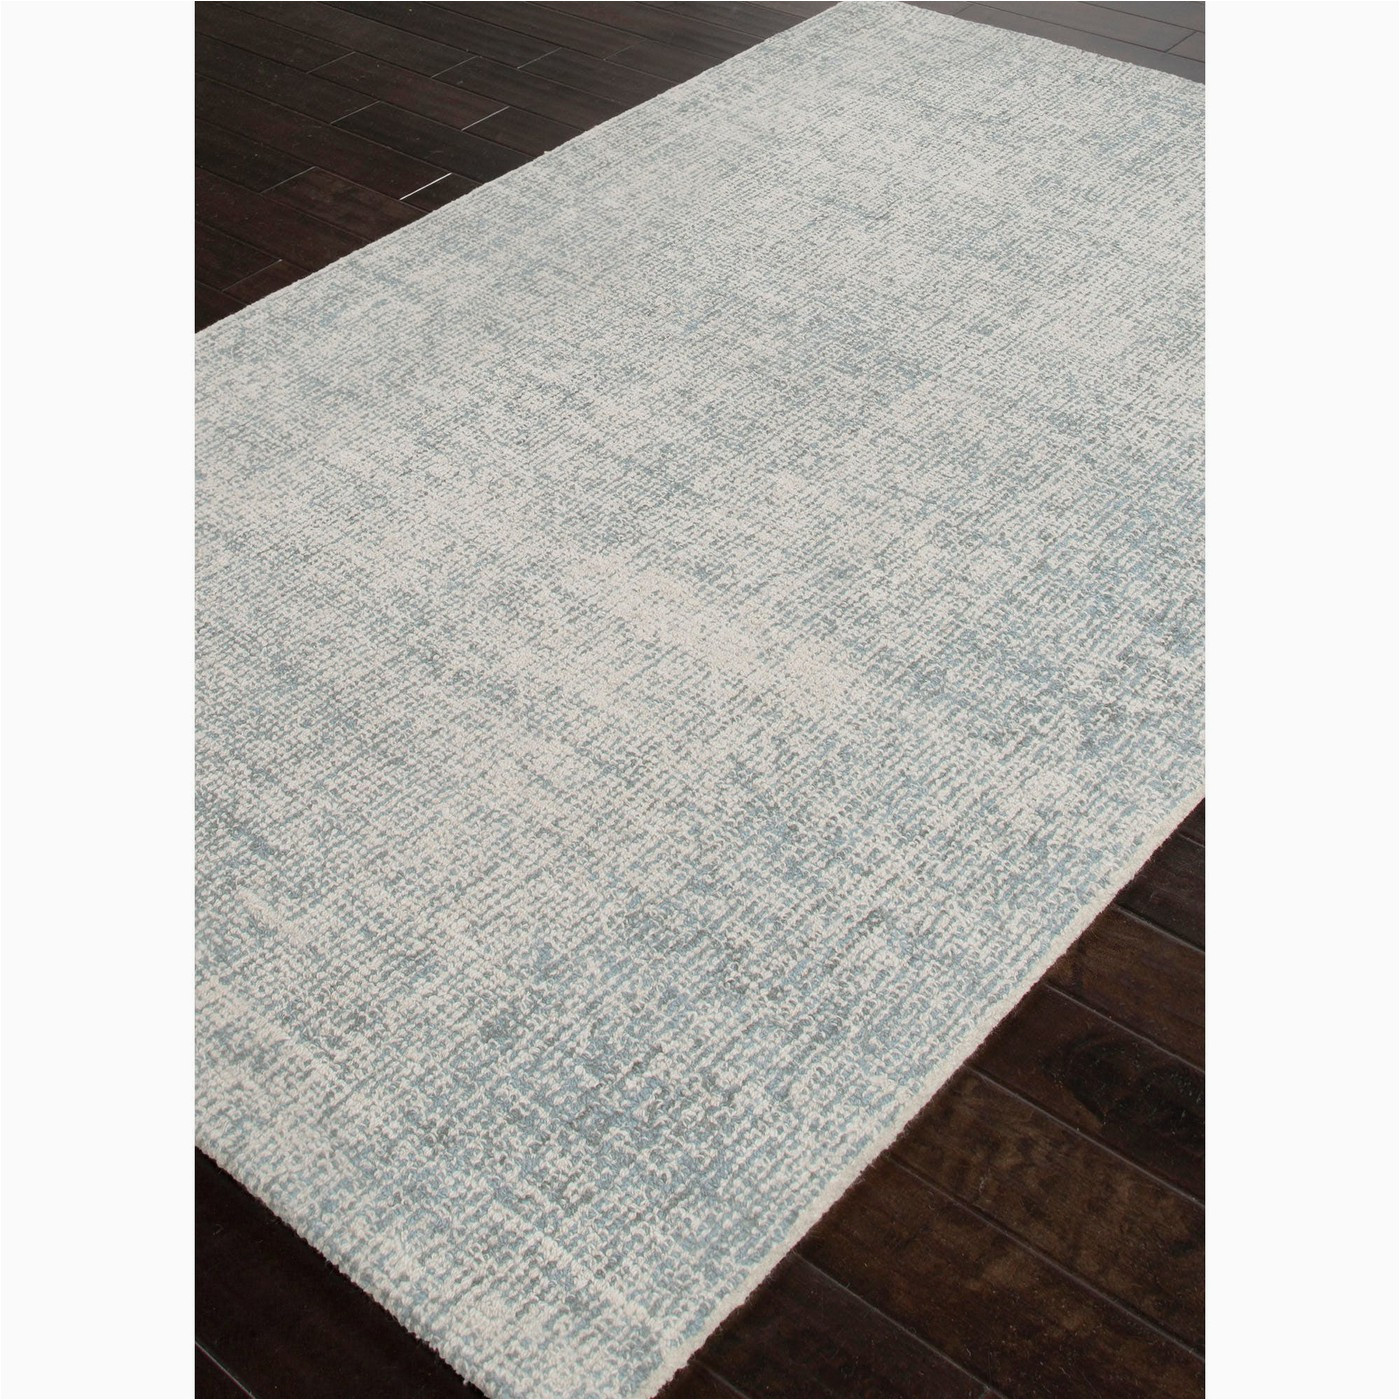 eye catching jcpenney area rugs for any flooring decoration